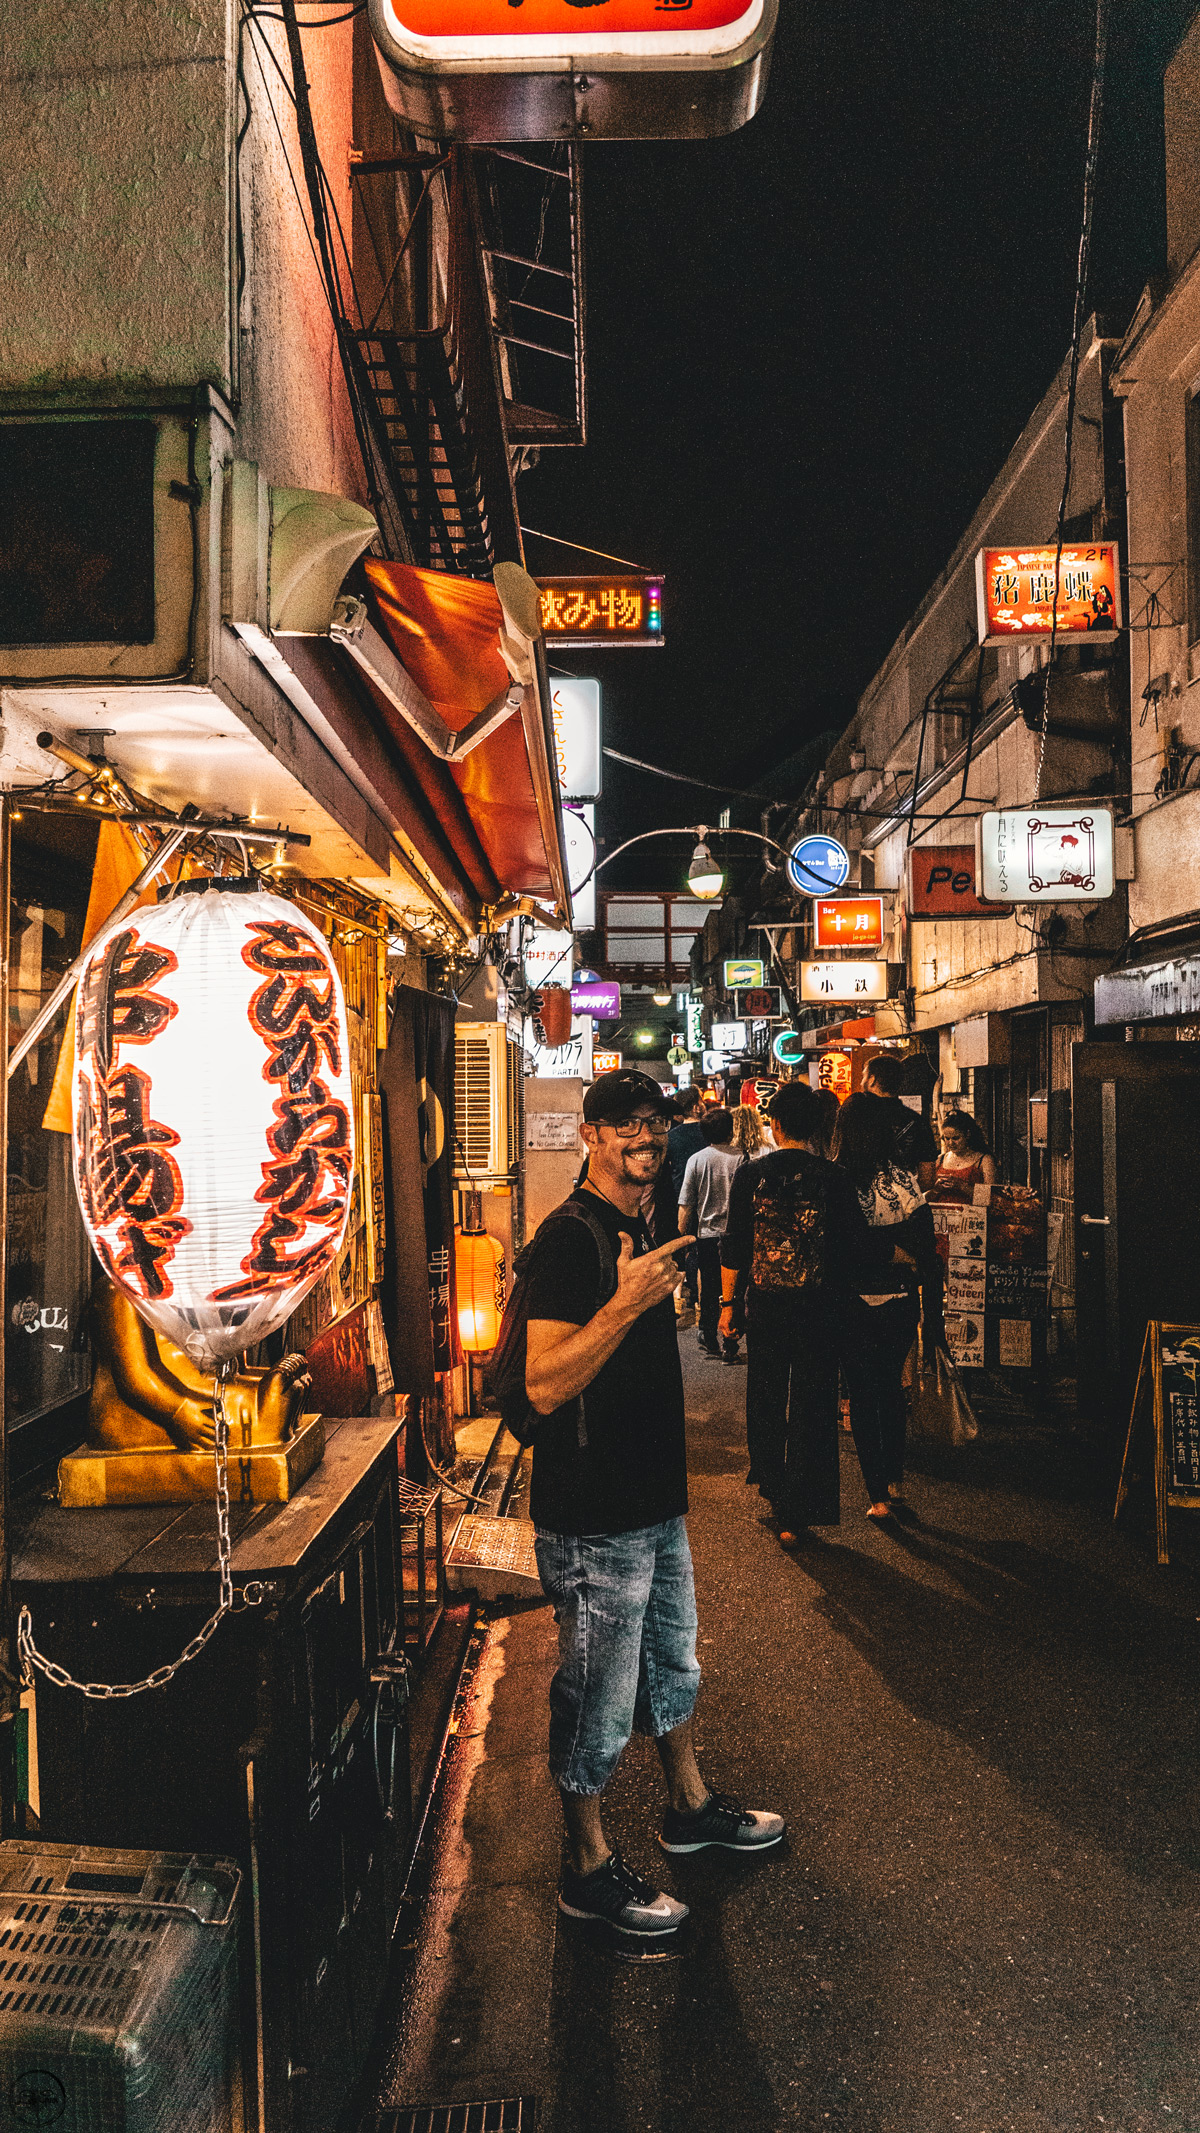 Going out at night in Tokyo